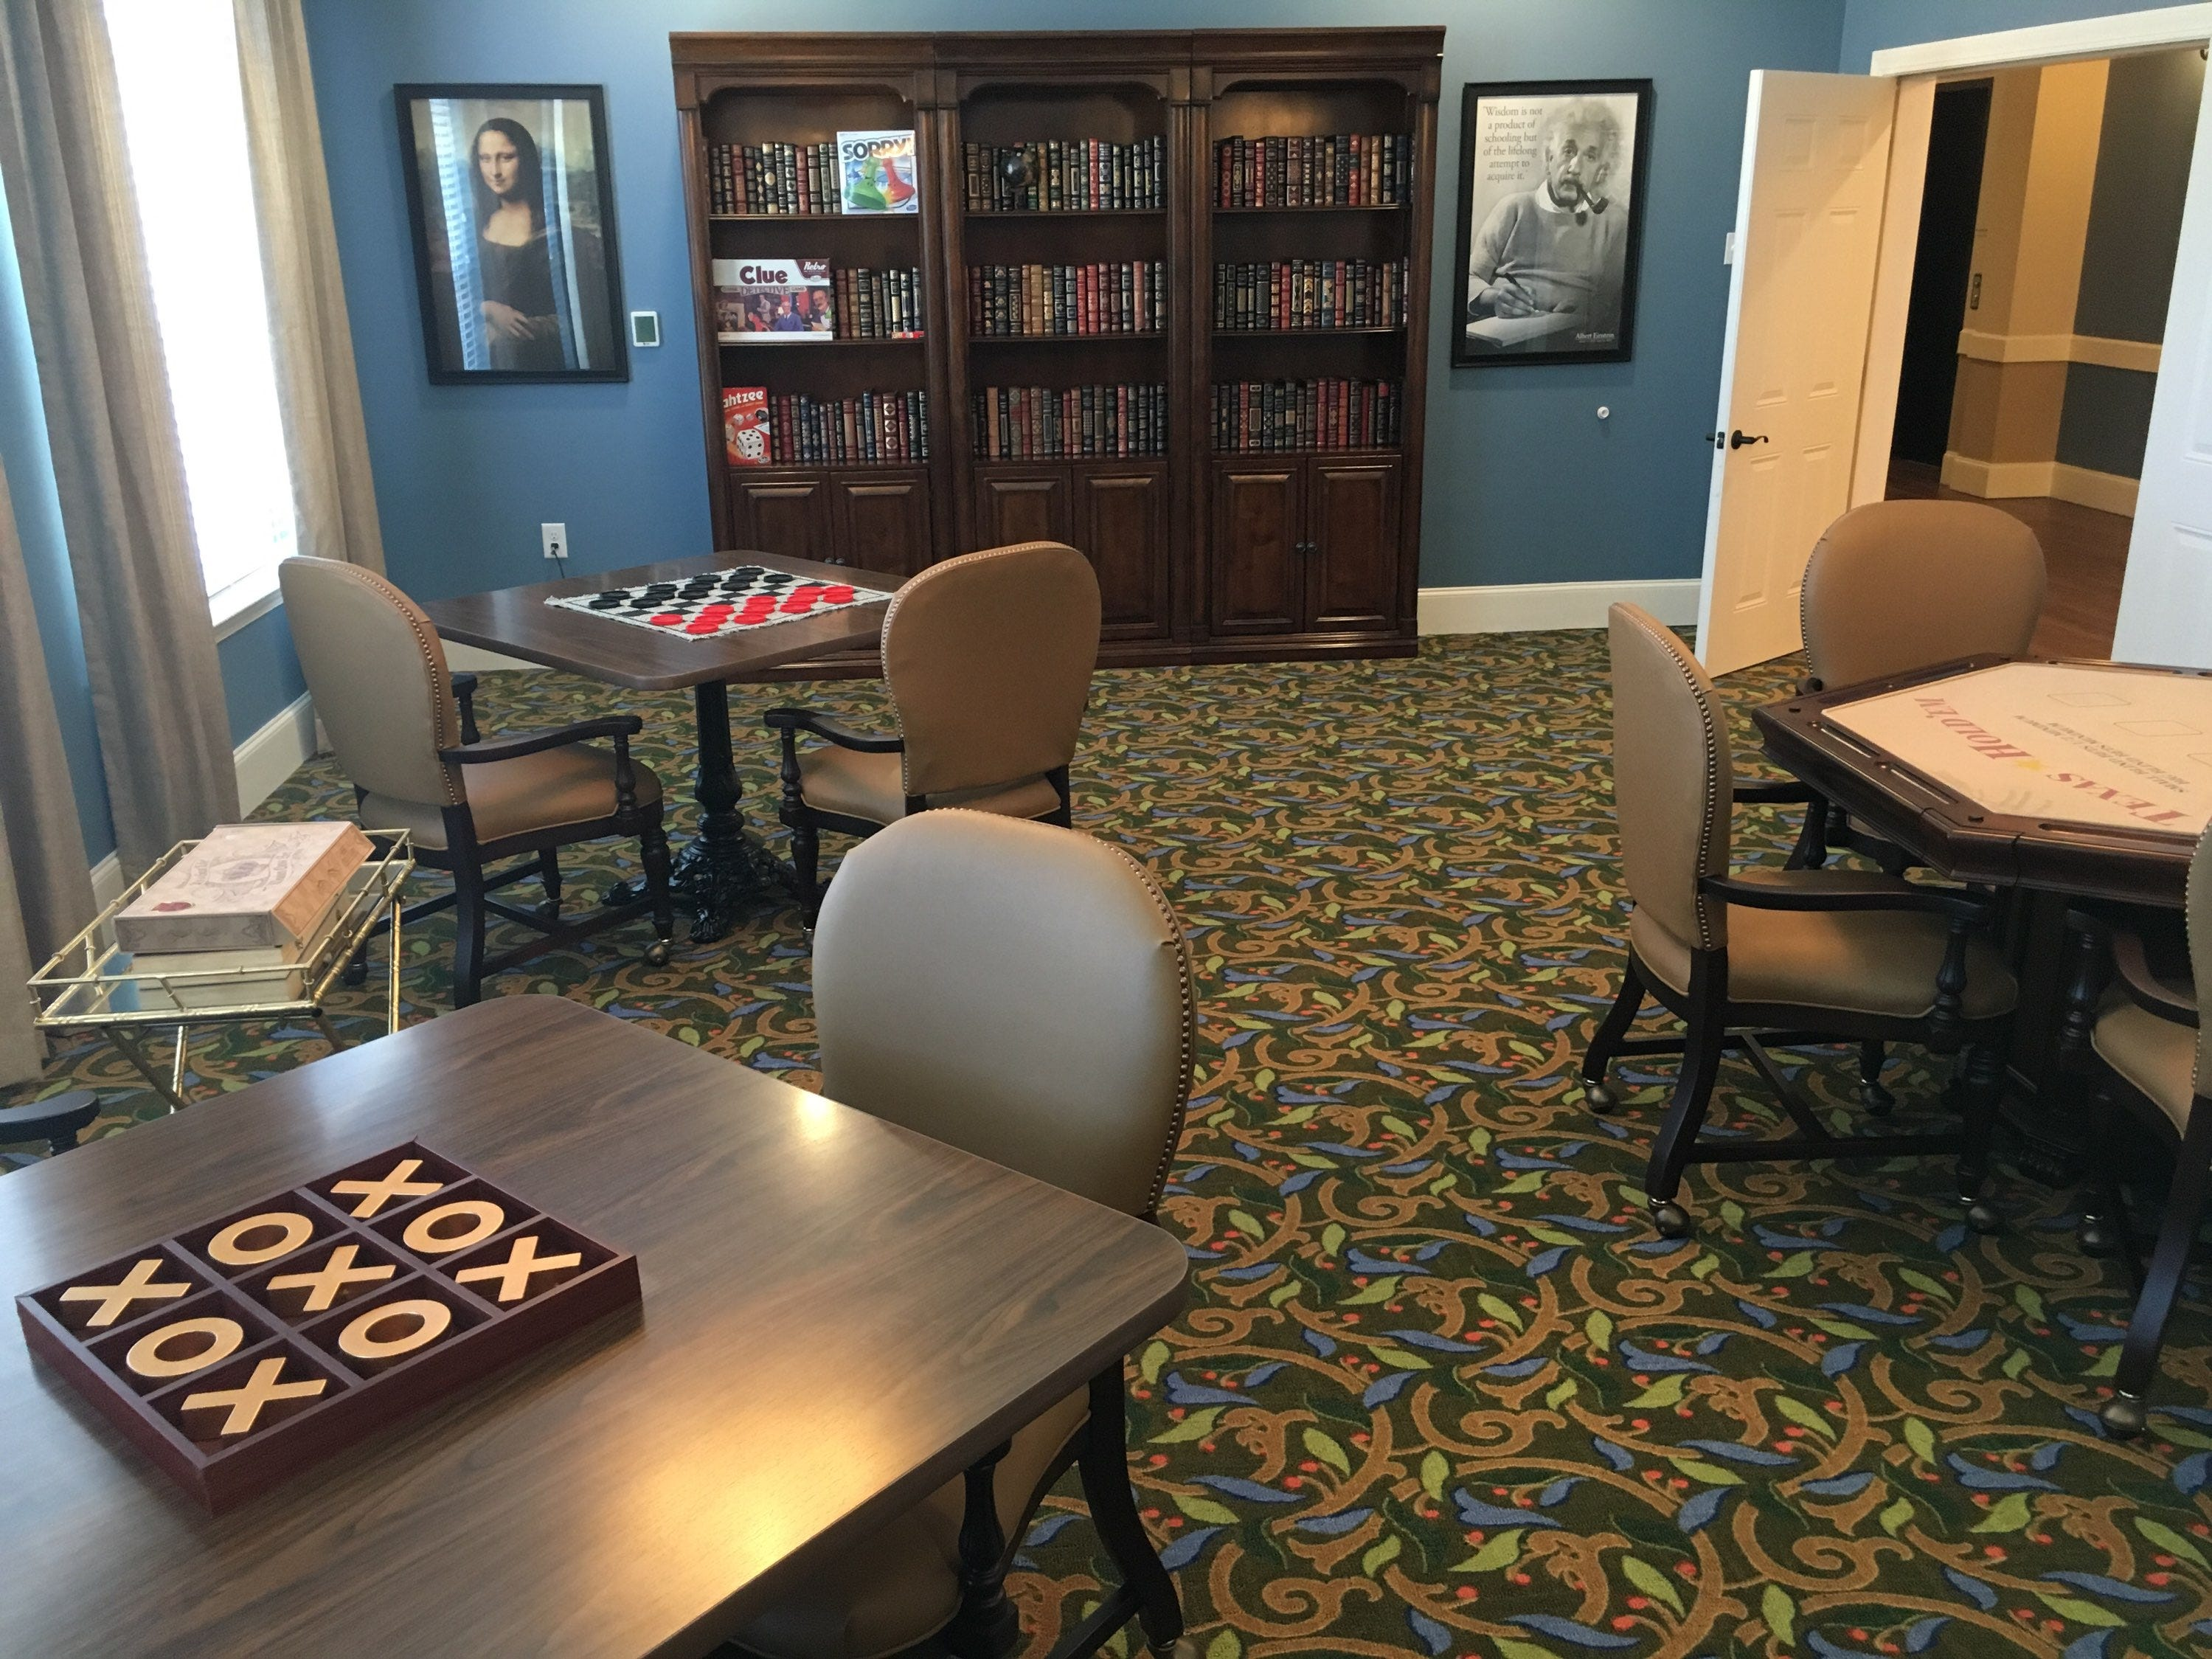 Library and game room at the Villages at the River Club.